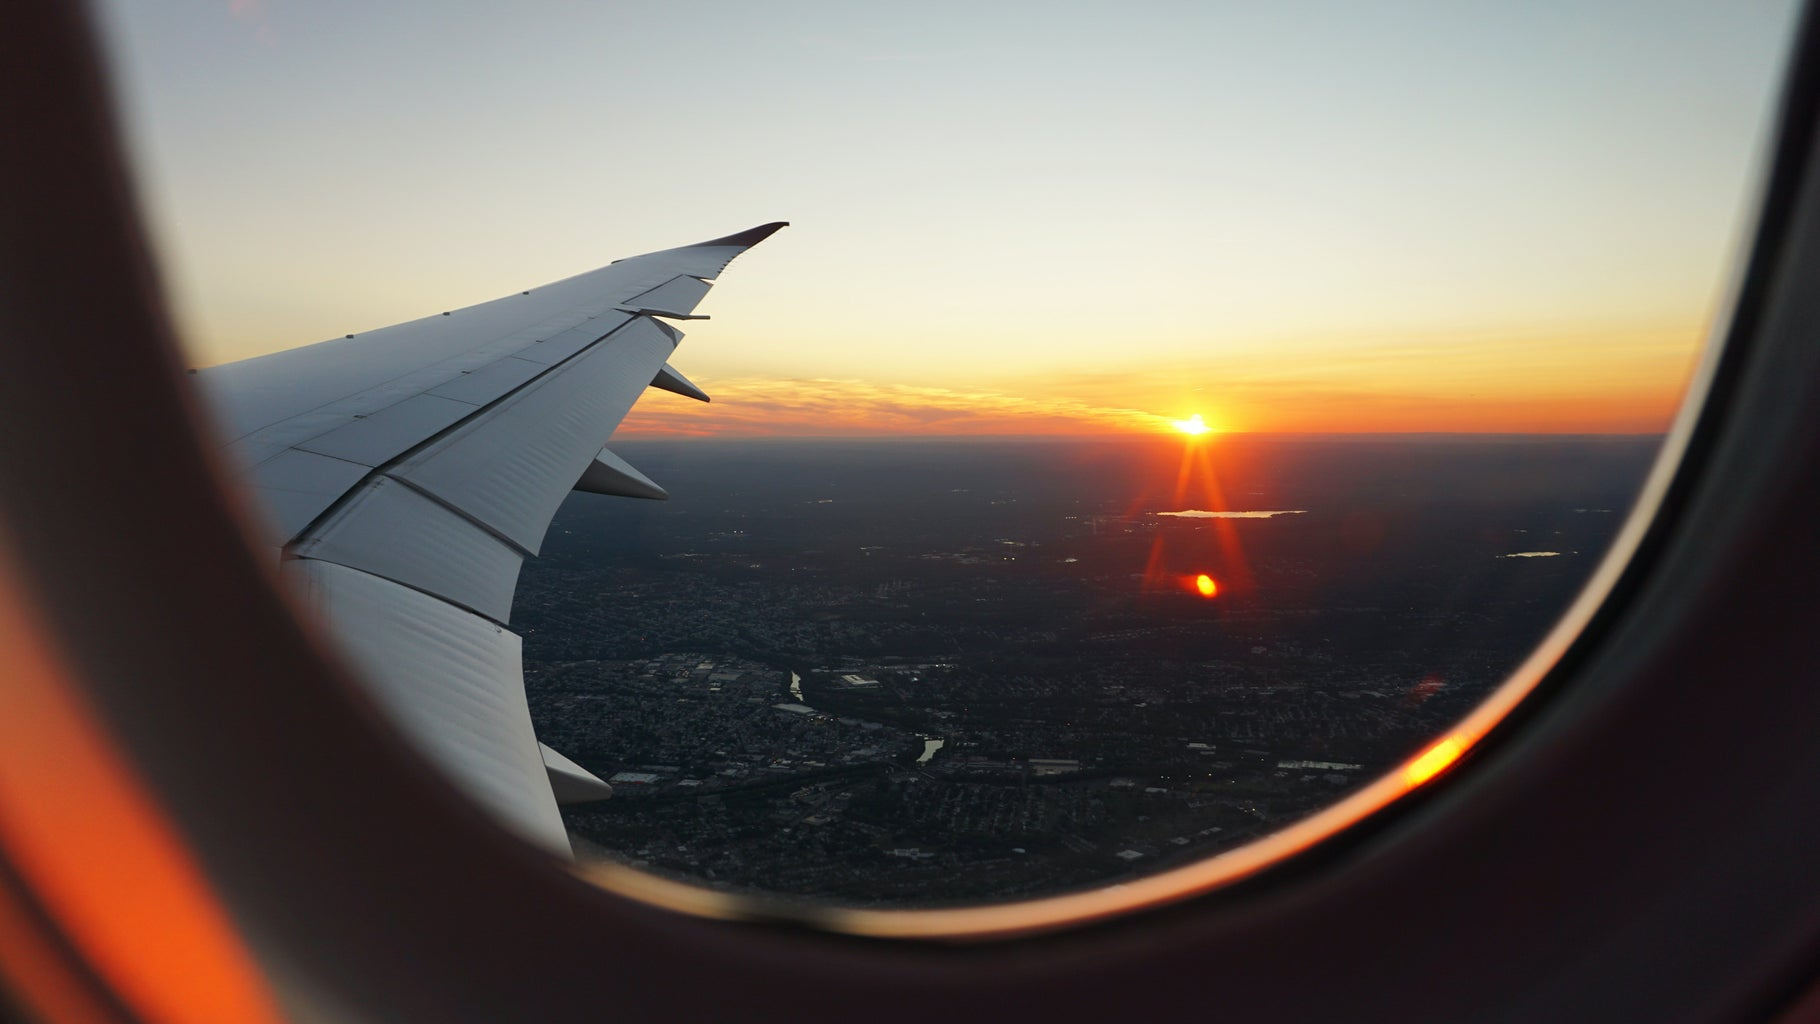 airplanes window view of sky during golden hour